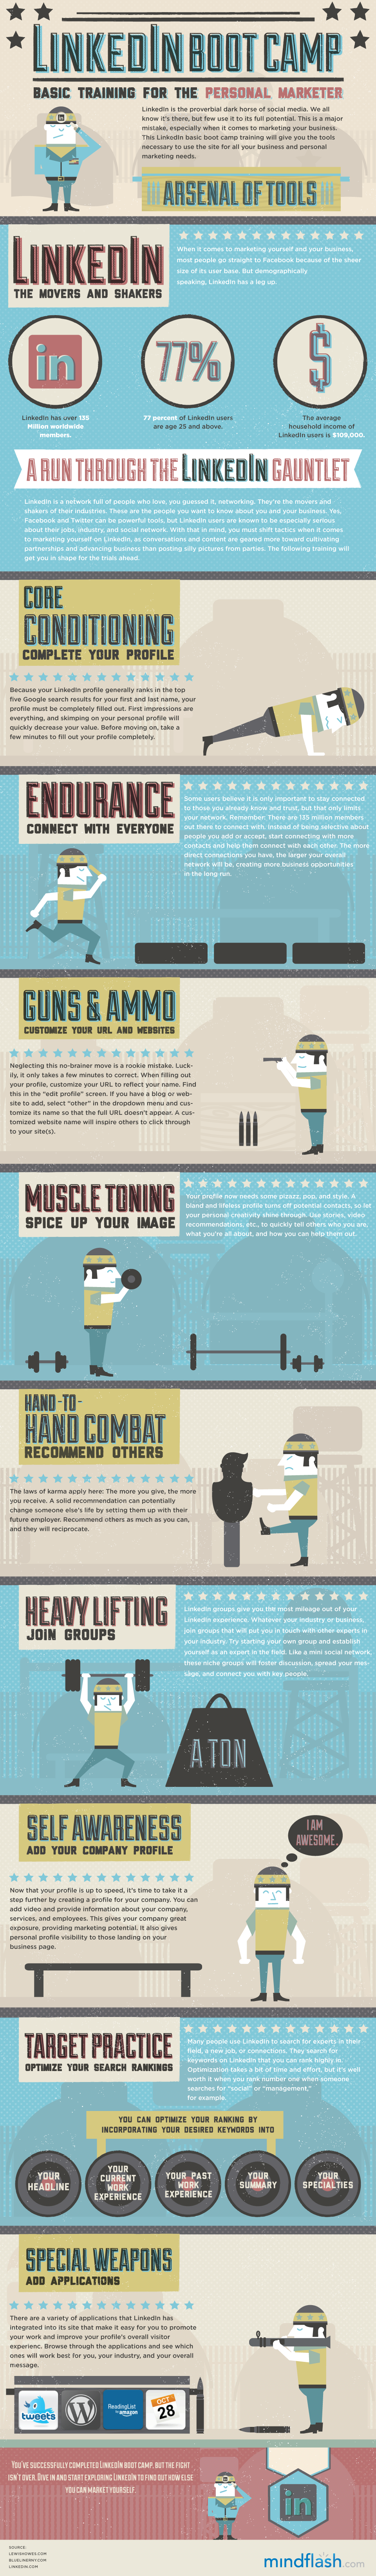 LinkedIn Bootcamp: Basic Training for the Personal Marketer (Infographic)